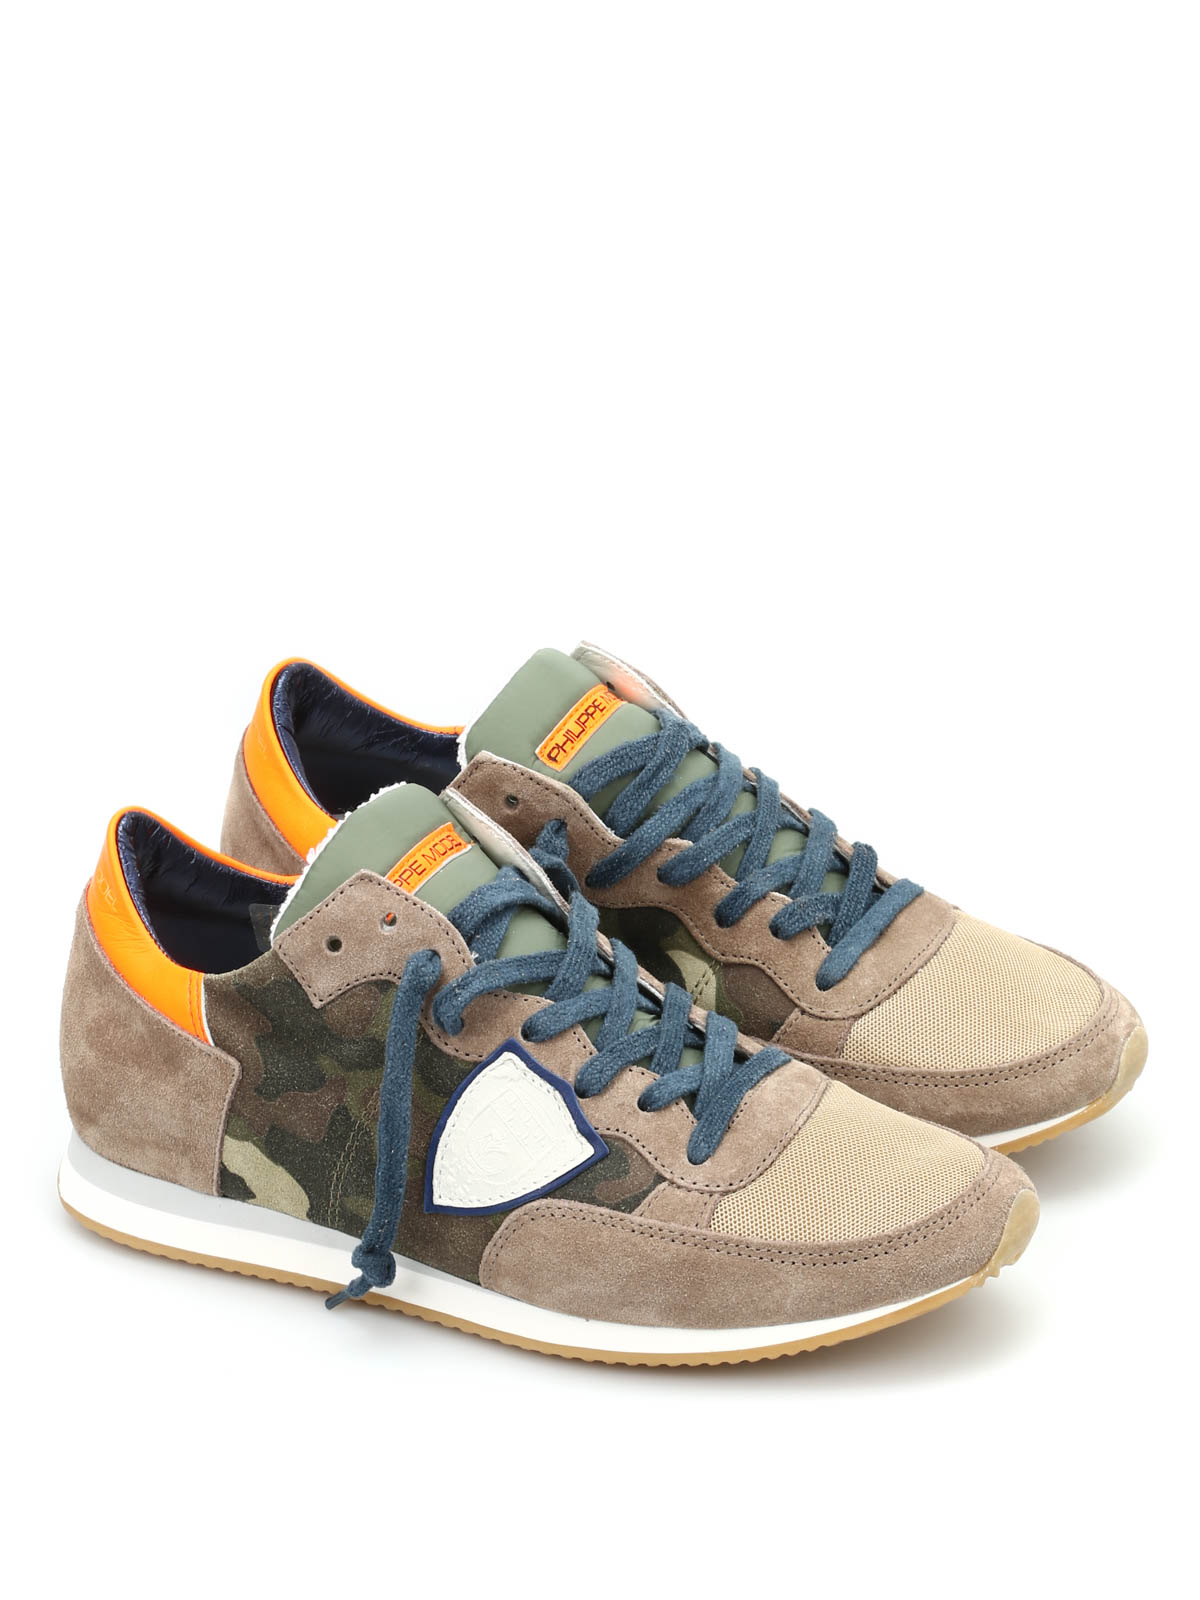 tropez camouflage running sneakers by philippe model trainers ikrix. Black Bedroom Furniture Sets. Home Design Ideas